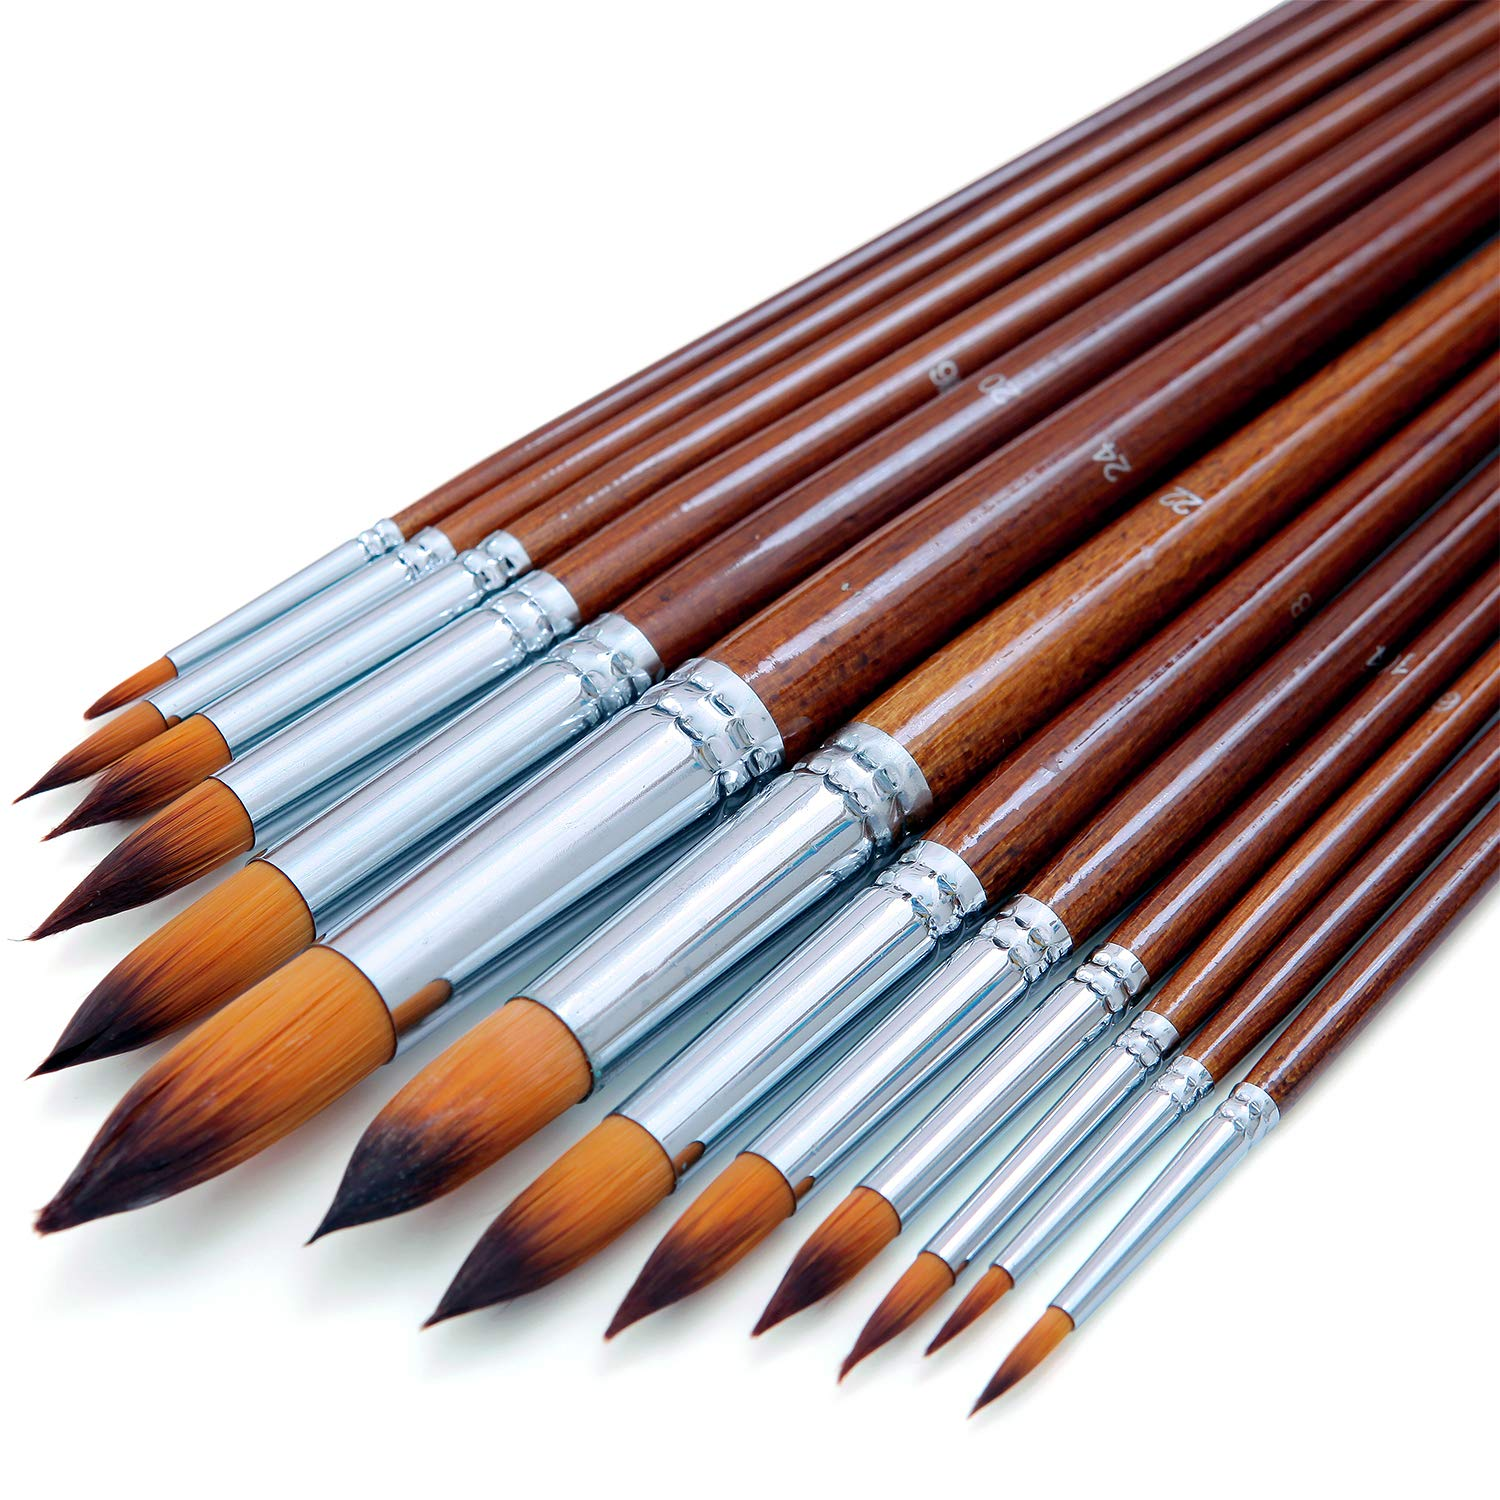 Artist Watercolor Paint Brushes Set 13pcs - Round Pointed Tip Soft Anti-Shedding Nylon Hair - Detail Paint Brush for Watercolor, Acrylics, Ink, Gouache, Oil and Tempera DUGATO